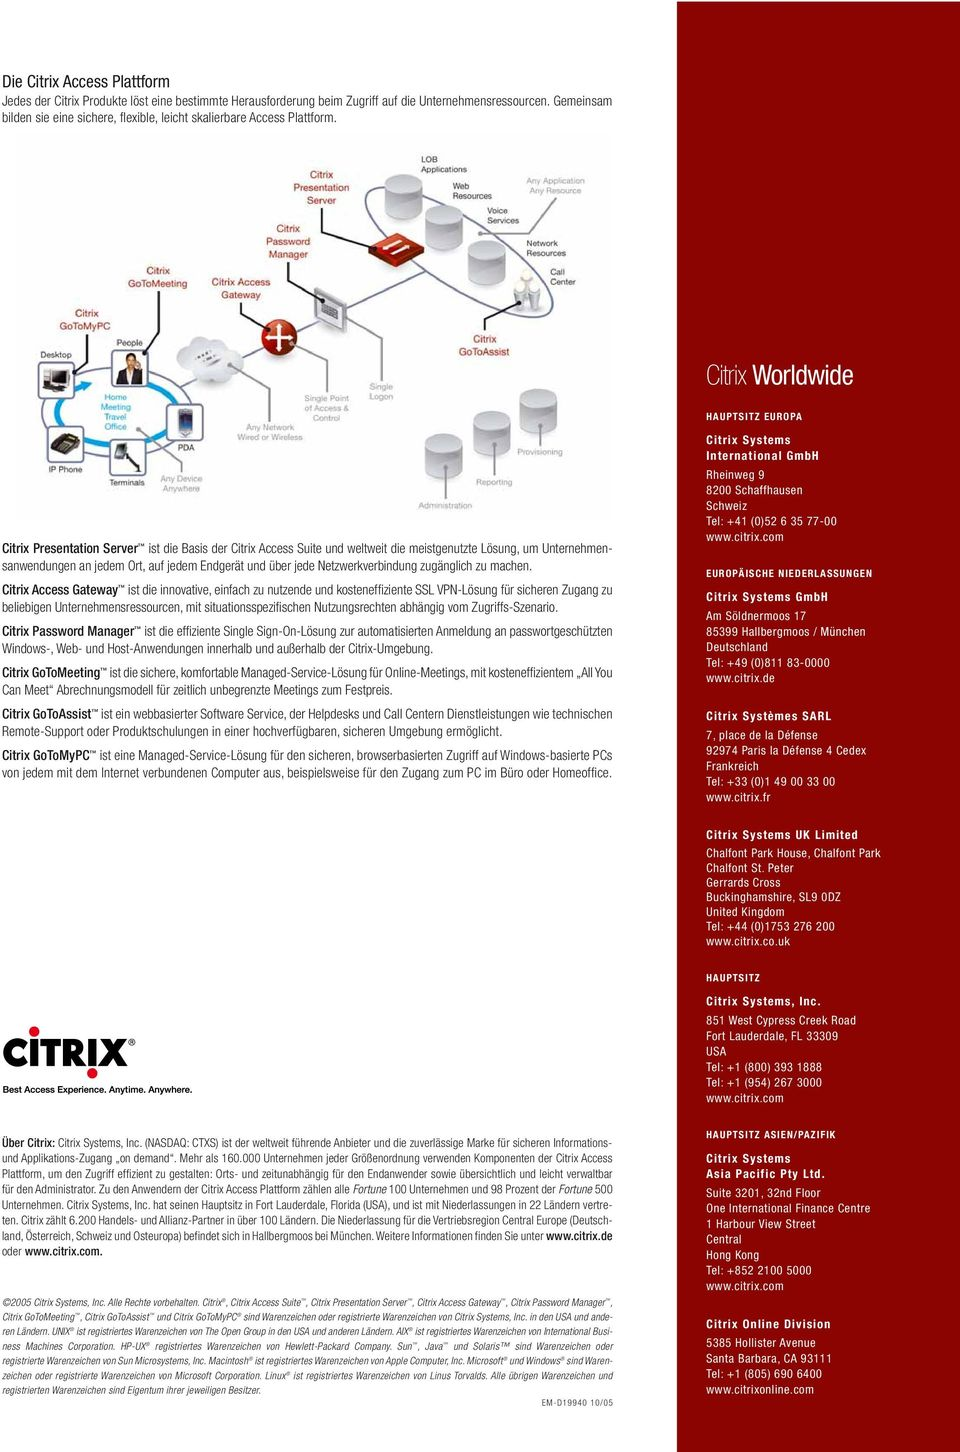 Citrix Worldwide HAUPTSITZ EUROPA Citrix Presentation Server ist die Basis der Citrix Access Suite und weltweit die meistgenutzte Lösung, um Unternehmensanwendungen an jedem Ort, auf jedem Endgerät